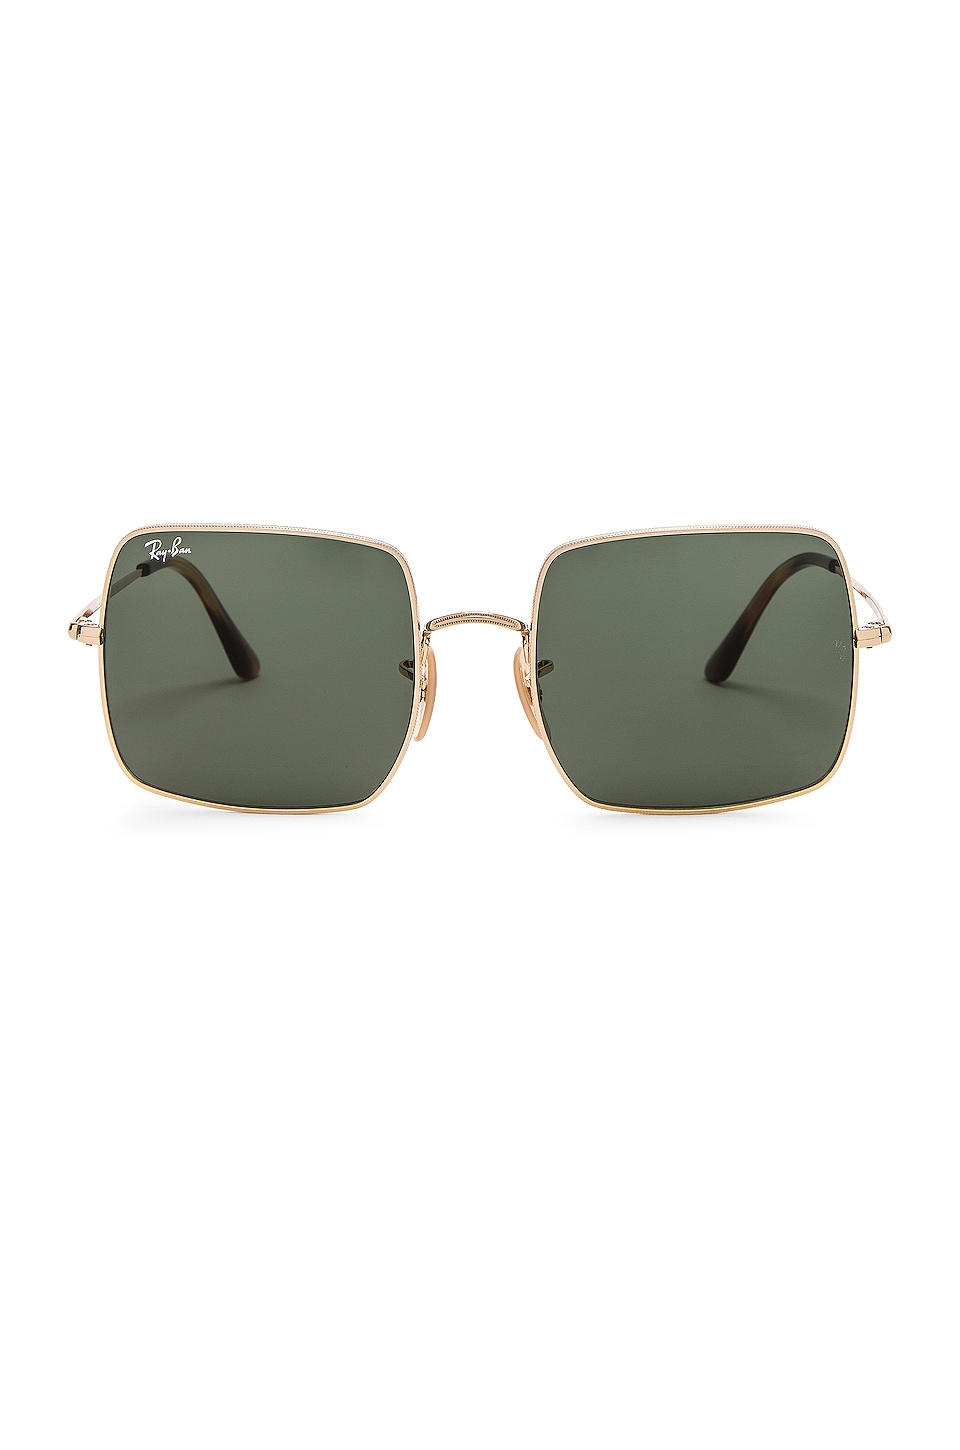 Ray-Ban Square Evolve in Green & Gold